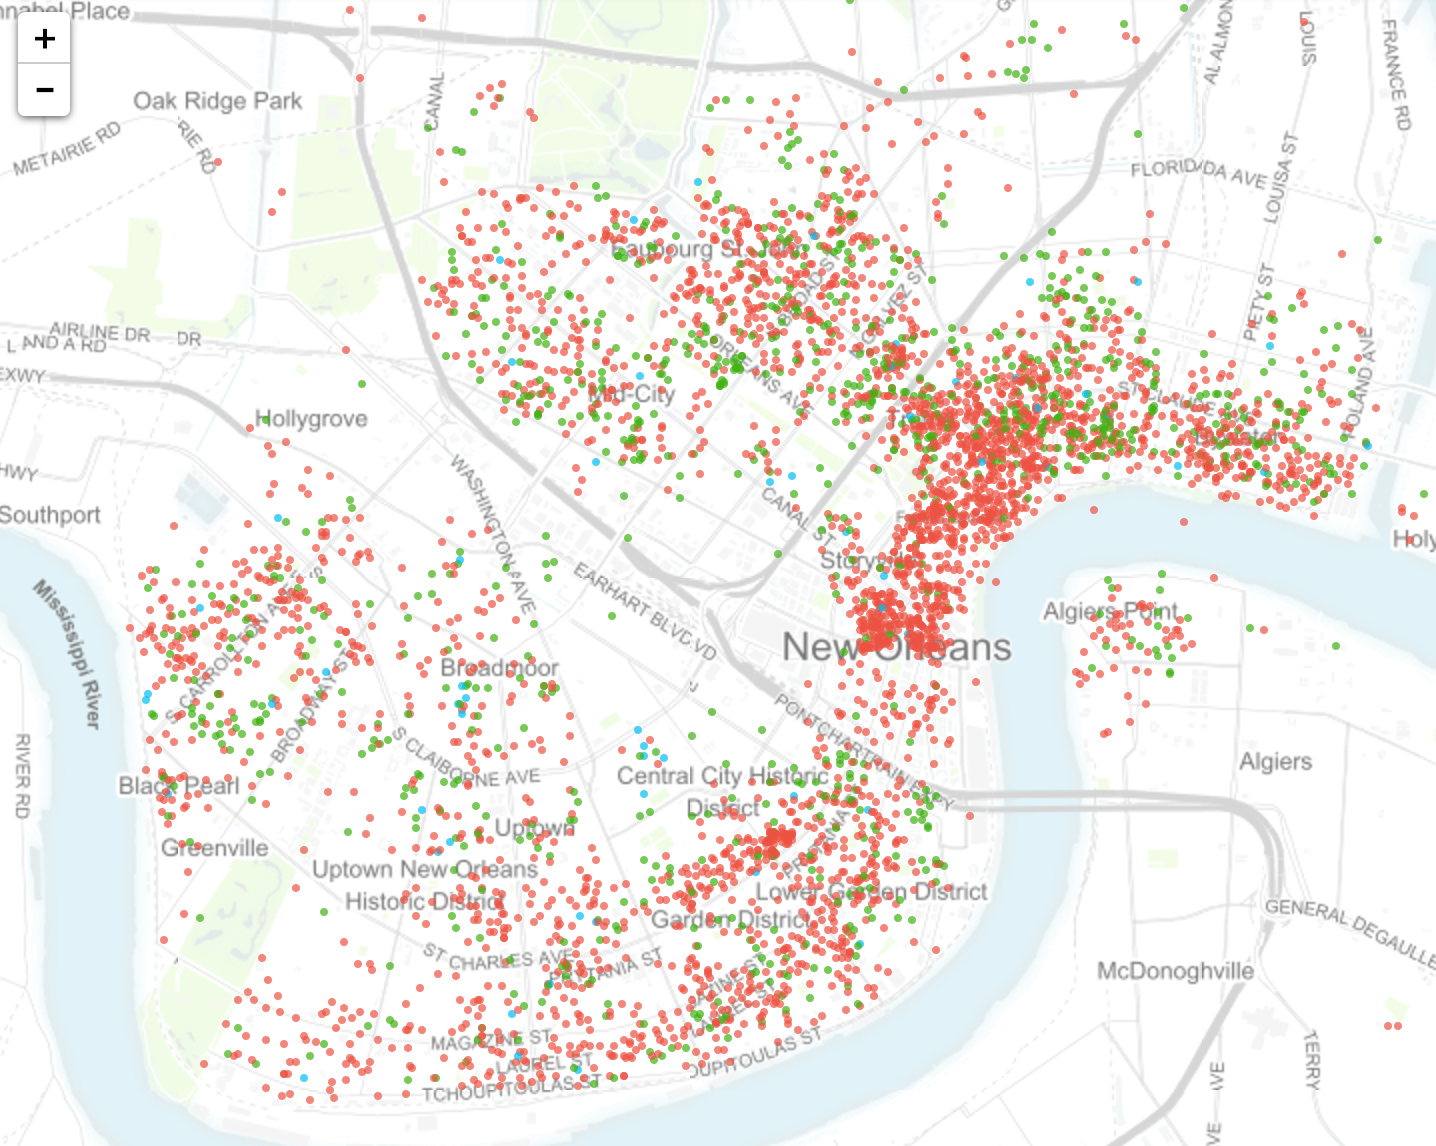 After April 1, 2017, it's legal to rent homes in New Orleans via Airbnb, VRBO and similar services (per recent City Council ordinance). Up until now, short term rentals were illegal in the city, but were impossible to regulate. Under the new ordinance, STR's remain illegal in the French Quarter. This map shows the plethora of AirBnBs that are currently operating illegally in the French Quarter (solid red), and the rest of the city. Source: insideairbnb.com